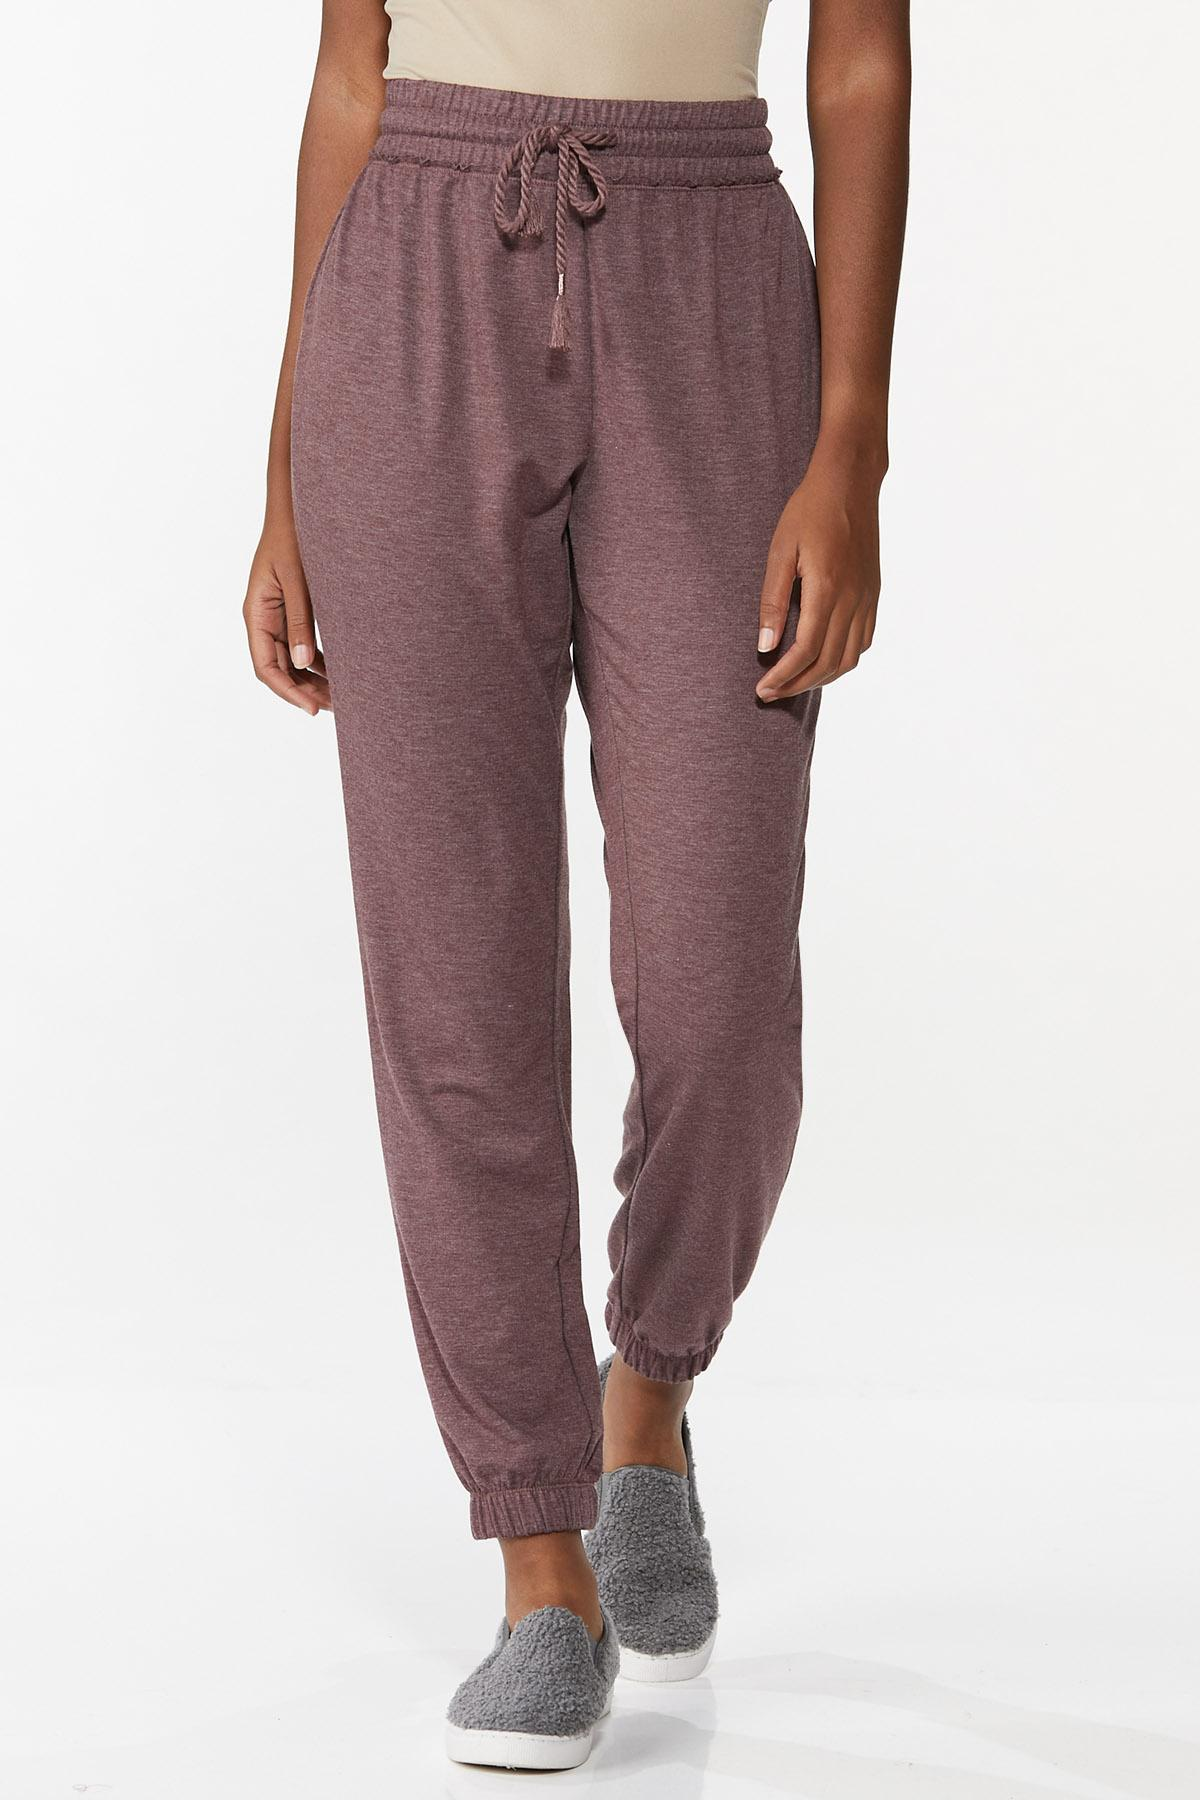 Wine French Terry Joggers